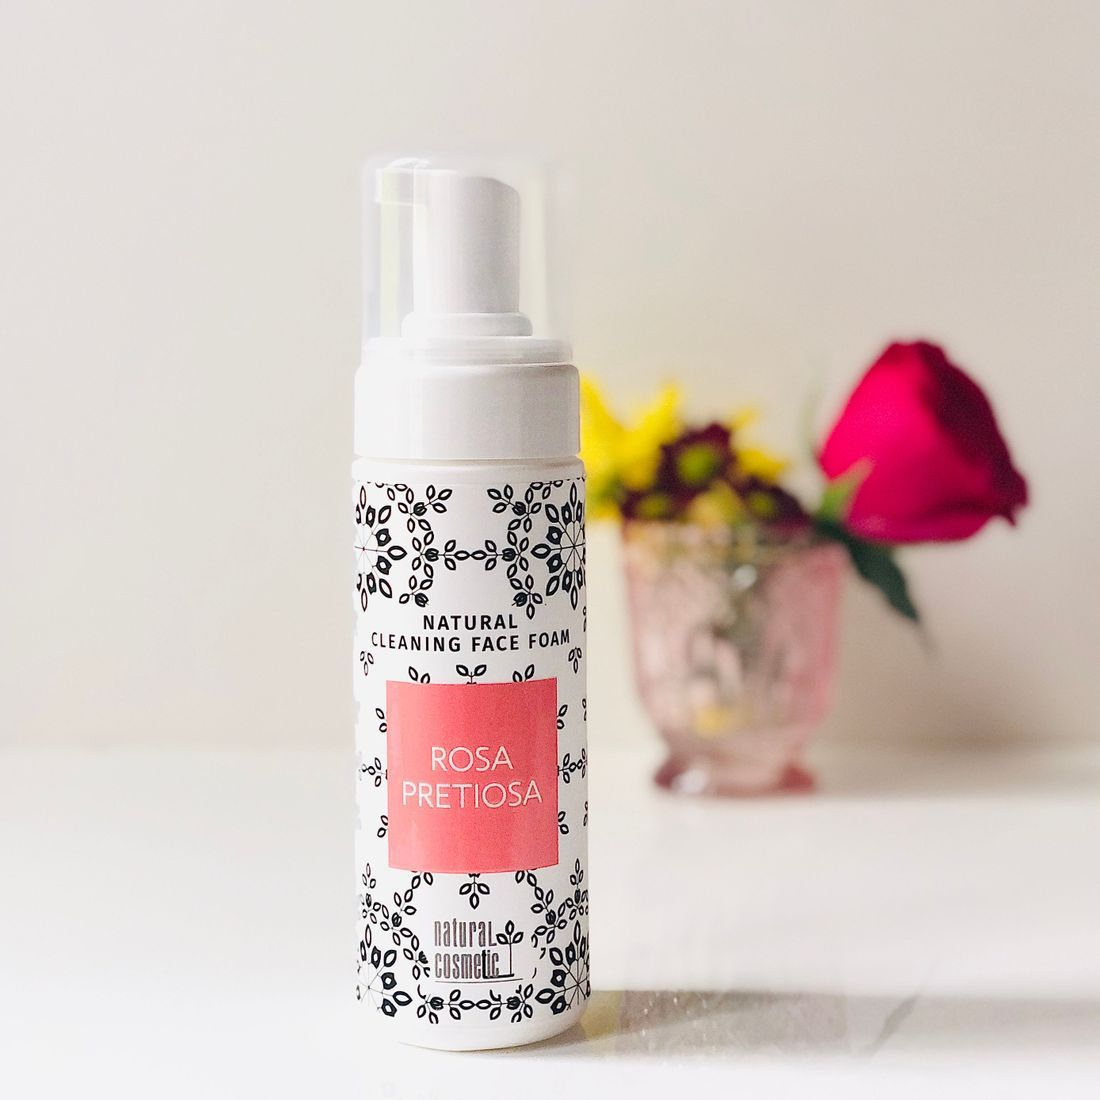 rose clean beauty, face cleansing foam, rose water, rose-infused skincare, organic skincare, clean beauty box, cleanbeauty